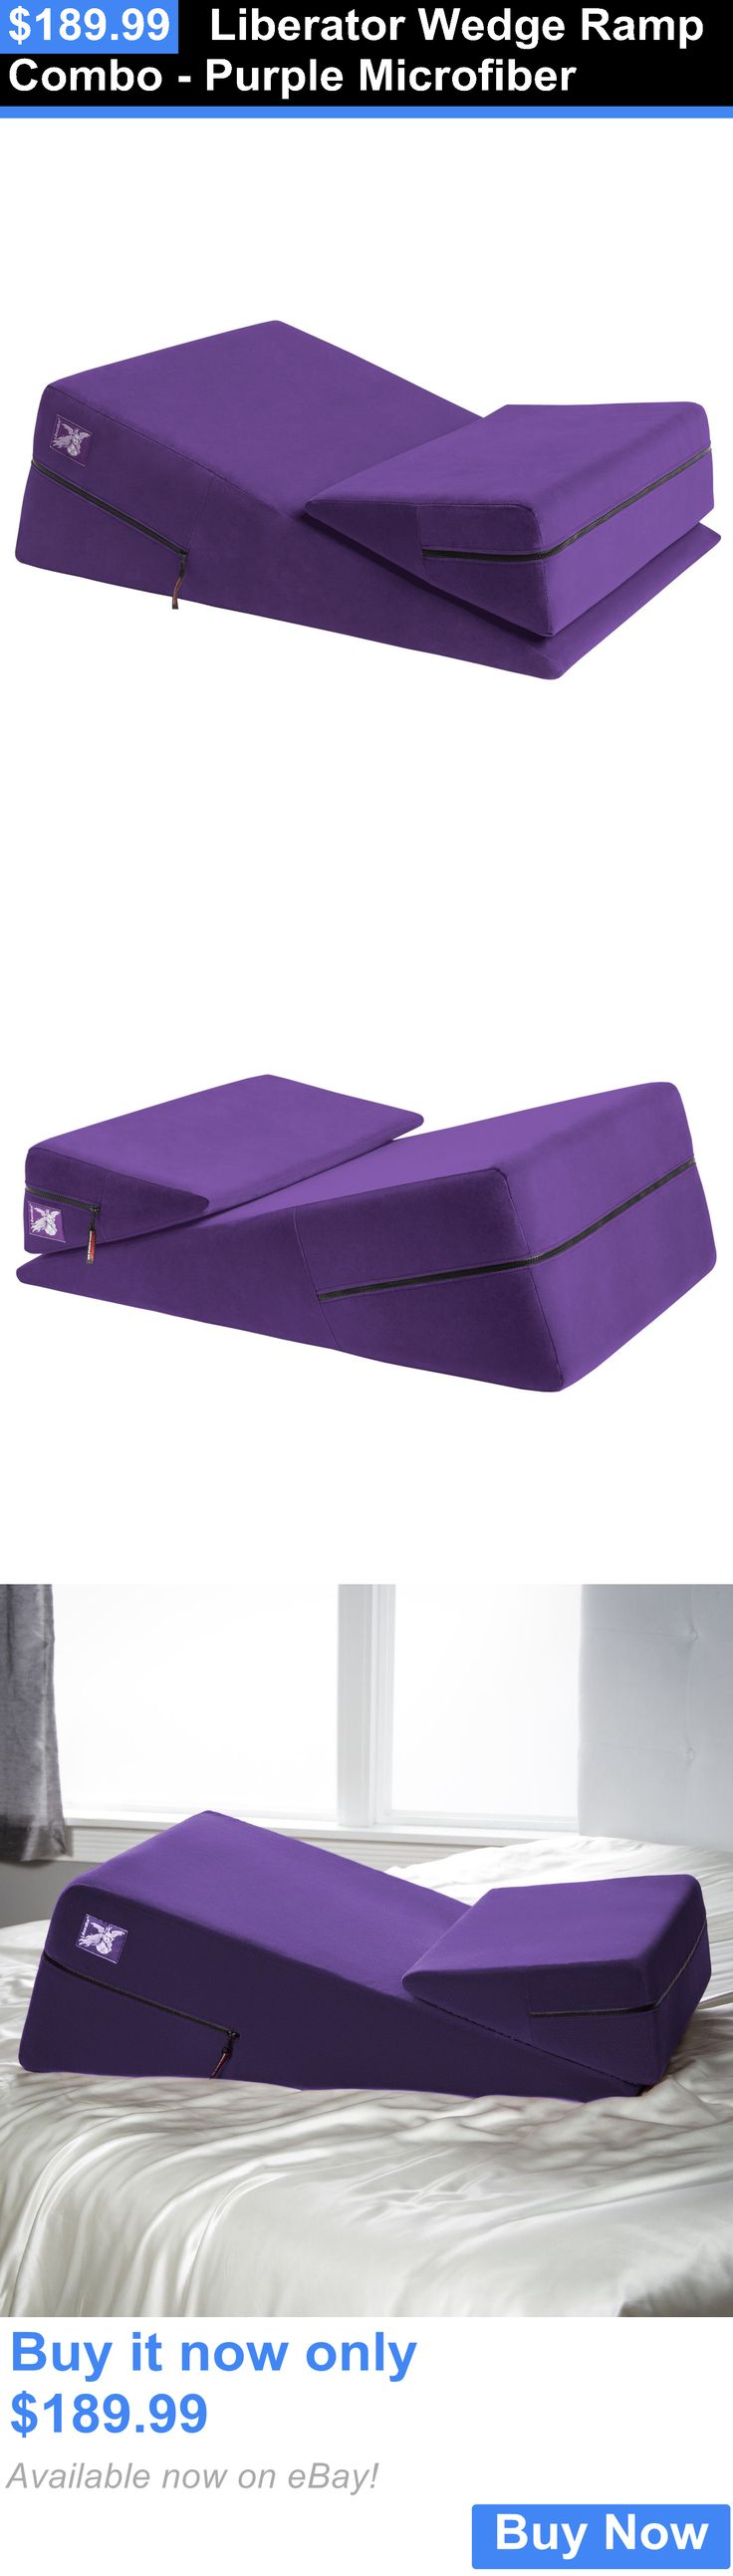 Massage Pillows and Bolsters: Liberator Wedge Ramp Combo - Purple Microfiber BUY IT NOW ONLY: $189.99